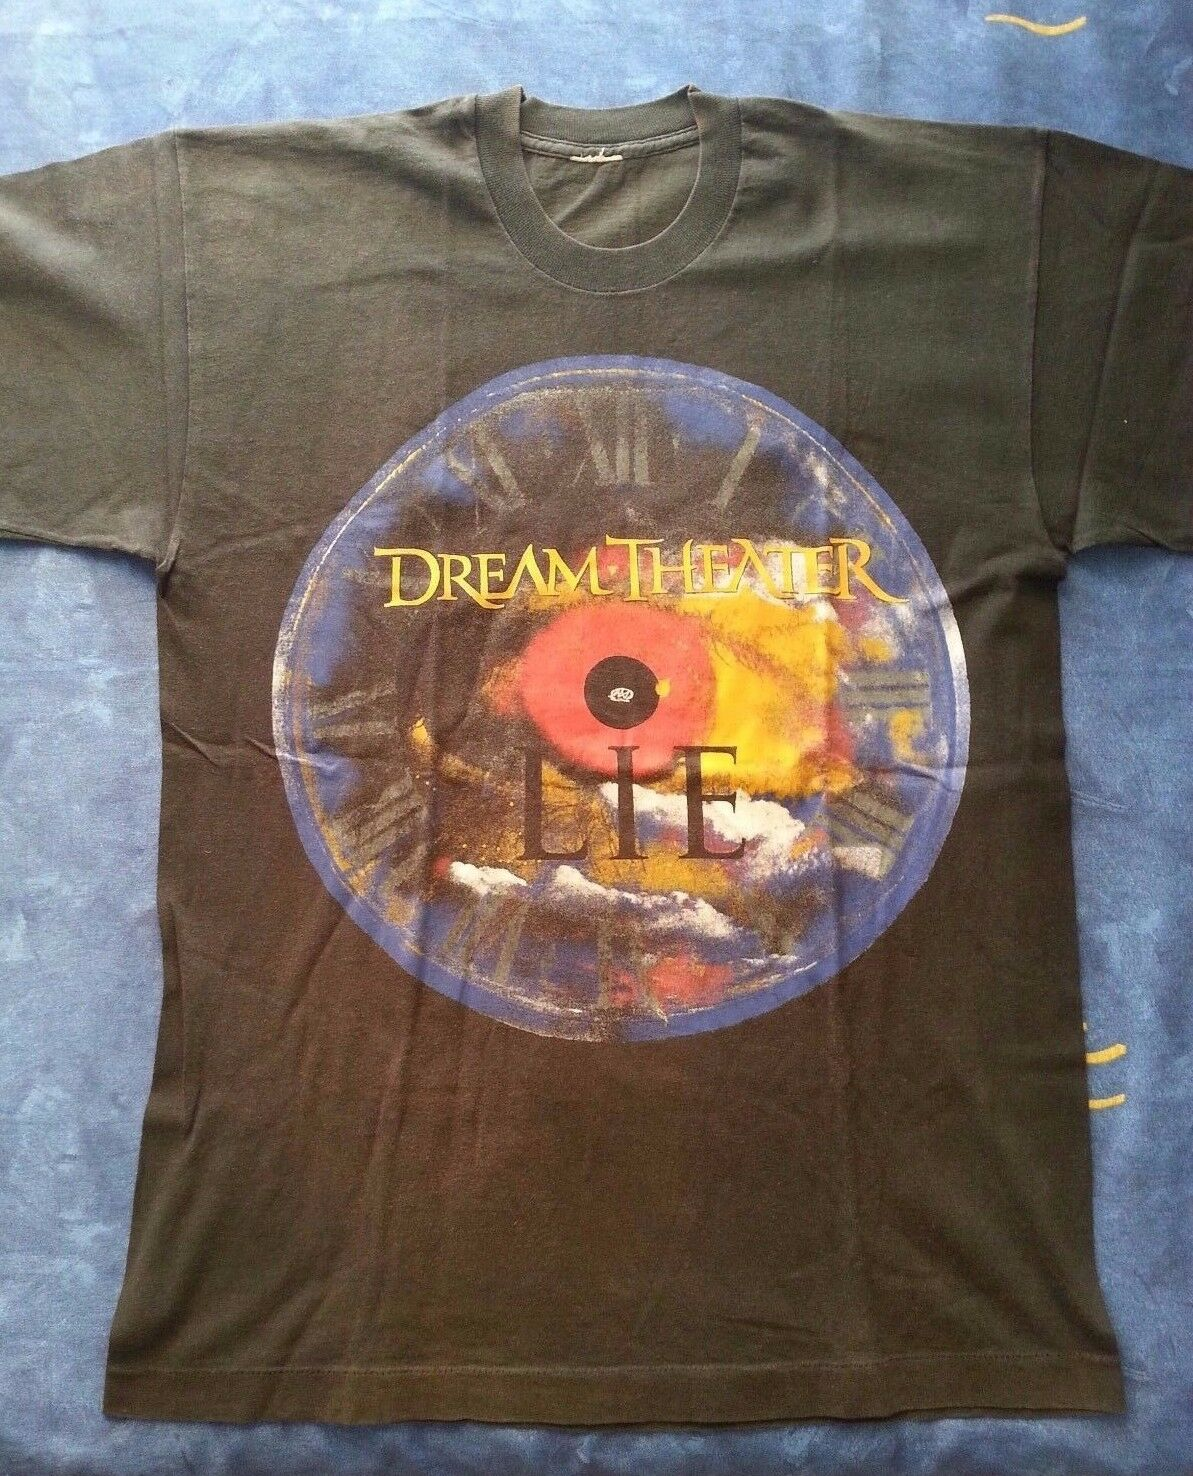 RARE Dream Theater Official Vintage t-shirt / Awake / Lie / Empire / Prog Metal